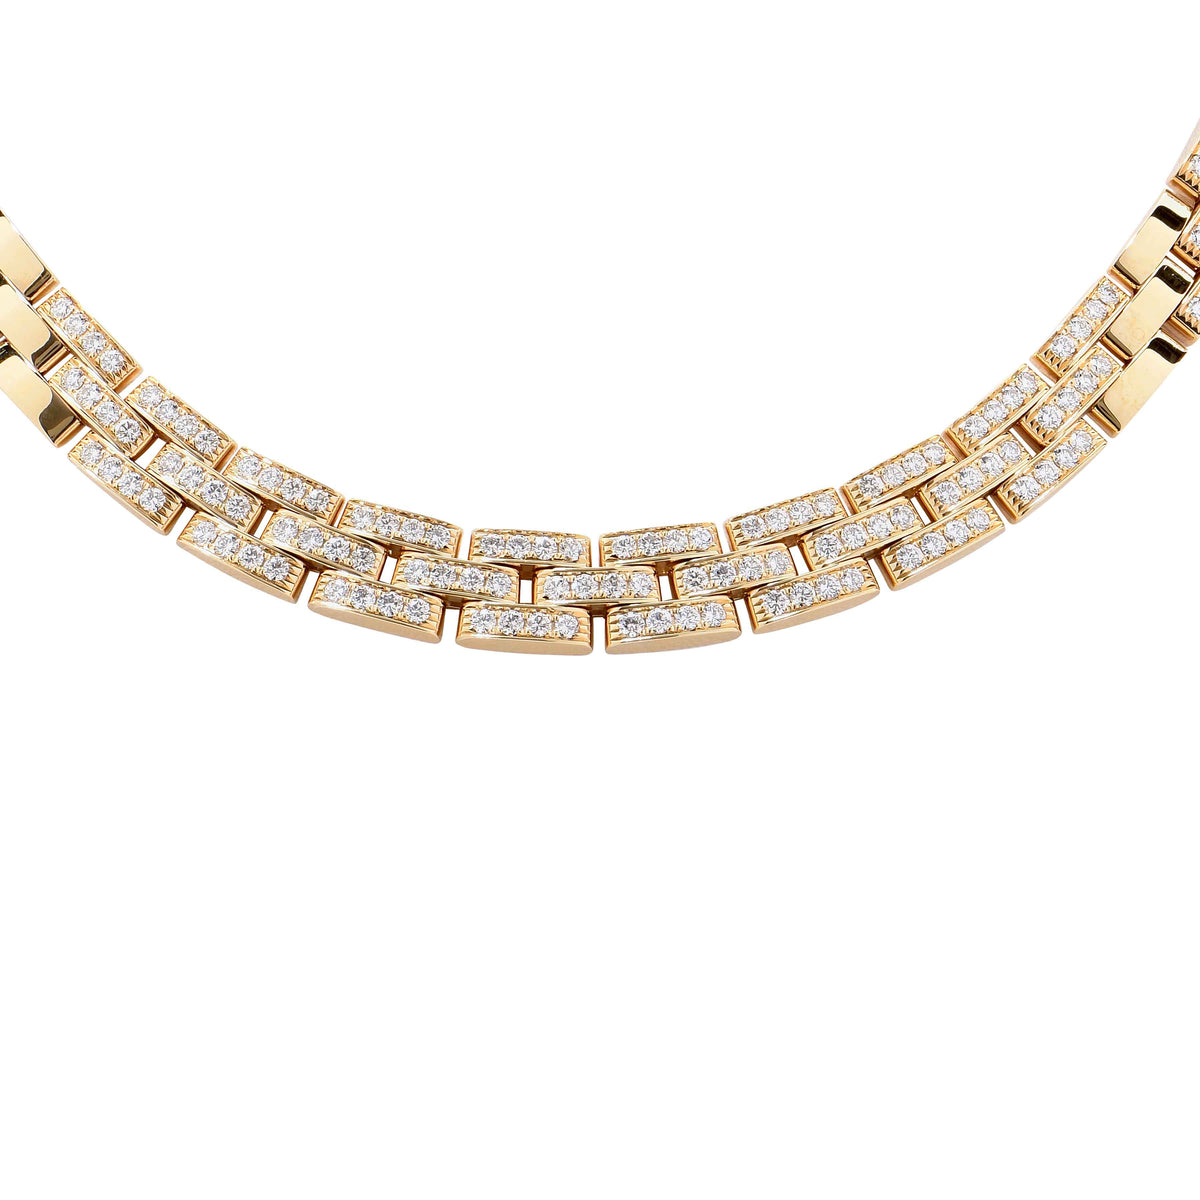 6 Carat Cartier Maillon Panthere Three-Row Diamond Yellow Gold Necklace